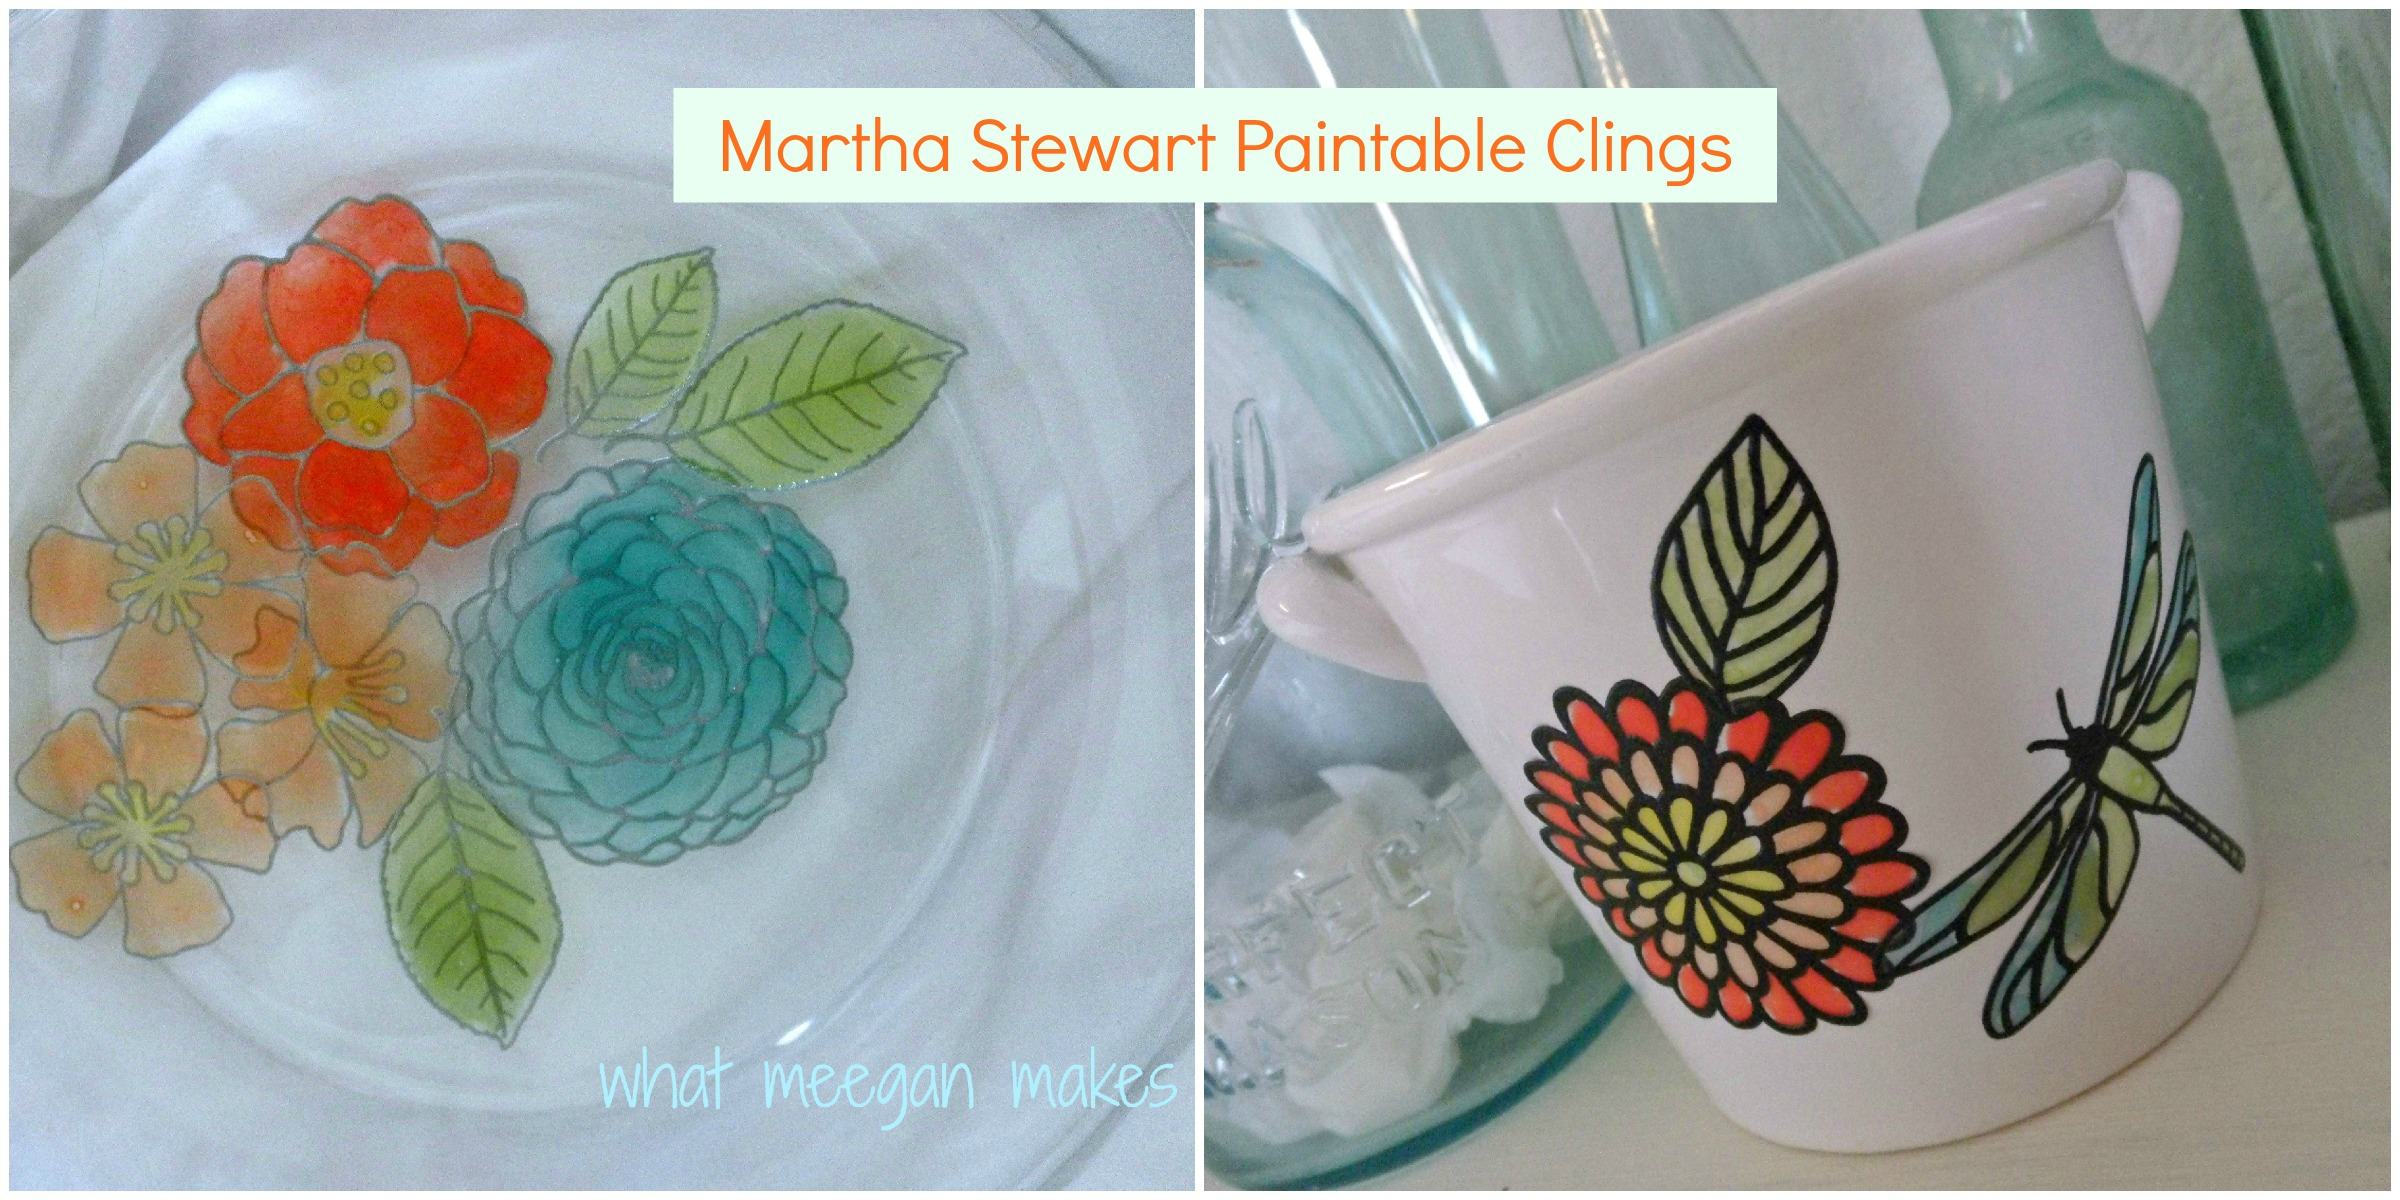 Martha Stewart Paintable Clings